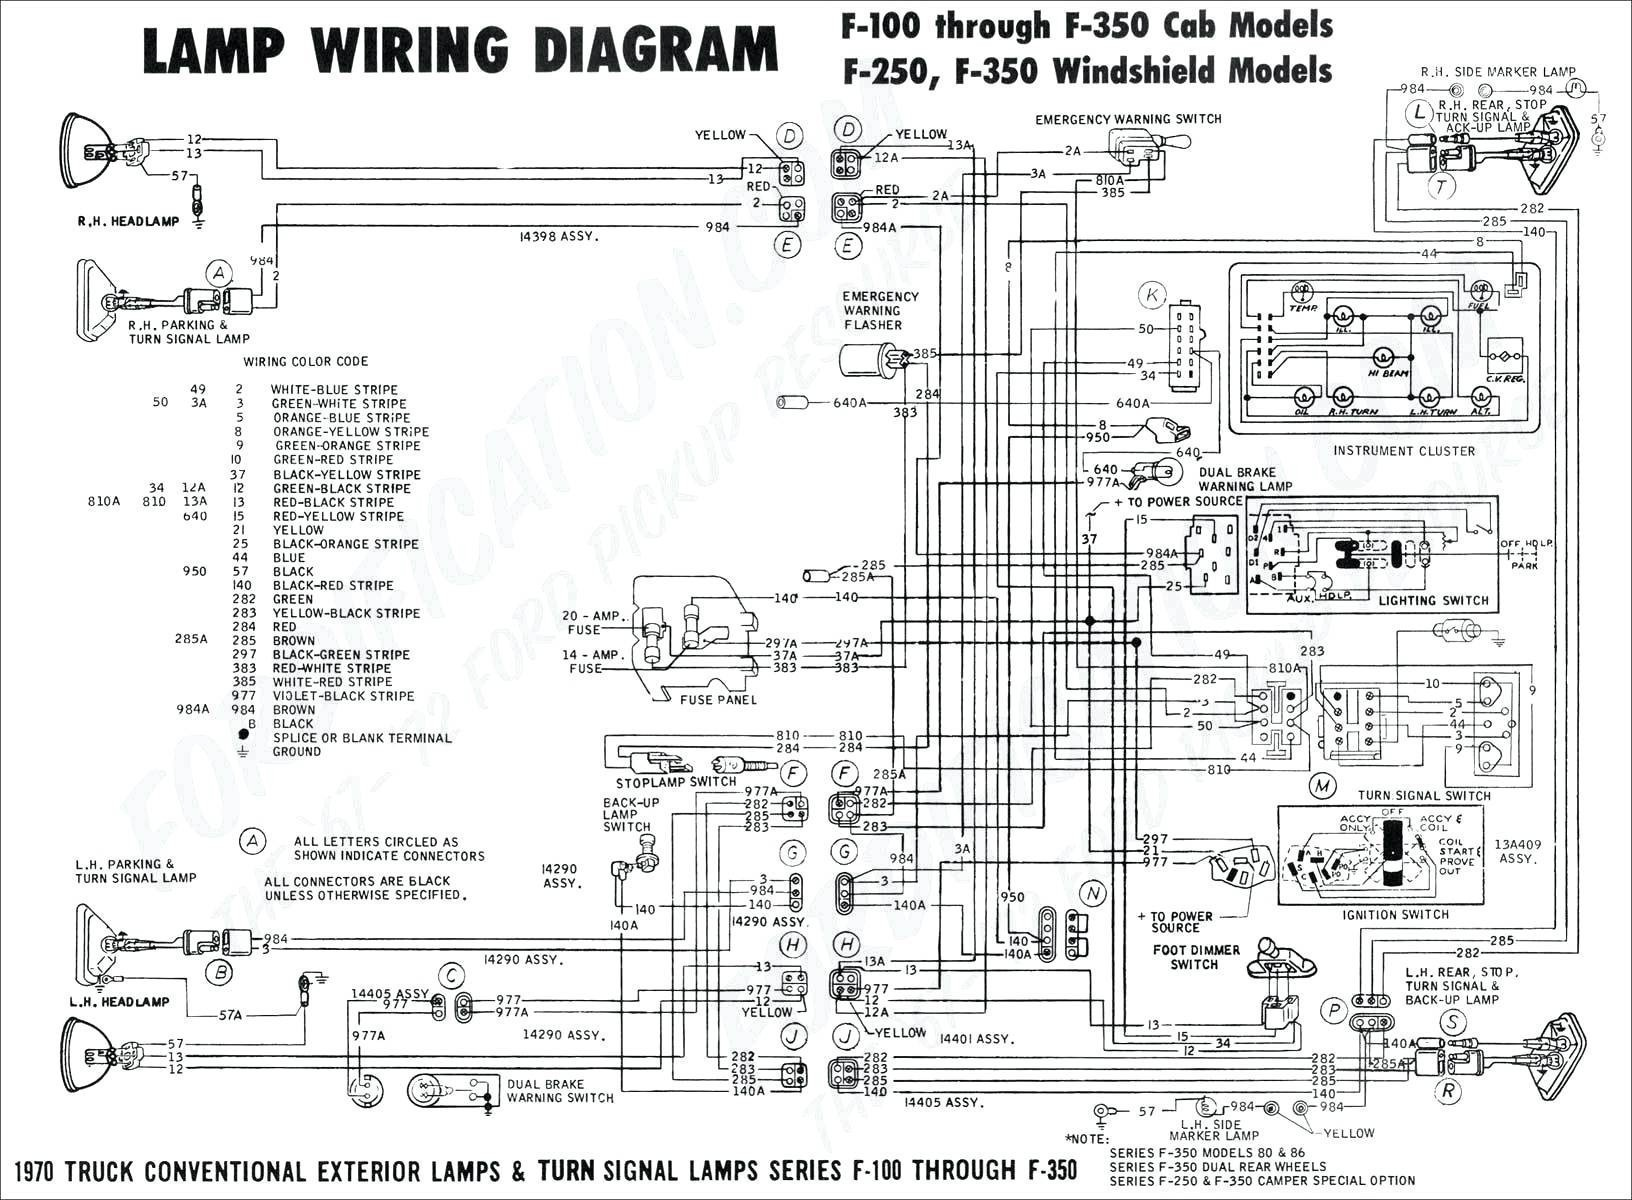 2000 Volkswagen Passat Engine Diagram Vw R32 Wiring Diagram Experts Wiring Diagram • Of 2000 Volkswagen Passat Engine Diagram Vw Golf 4 Climatronic Wiring Diagram Inspirational 2000 Vw Passat